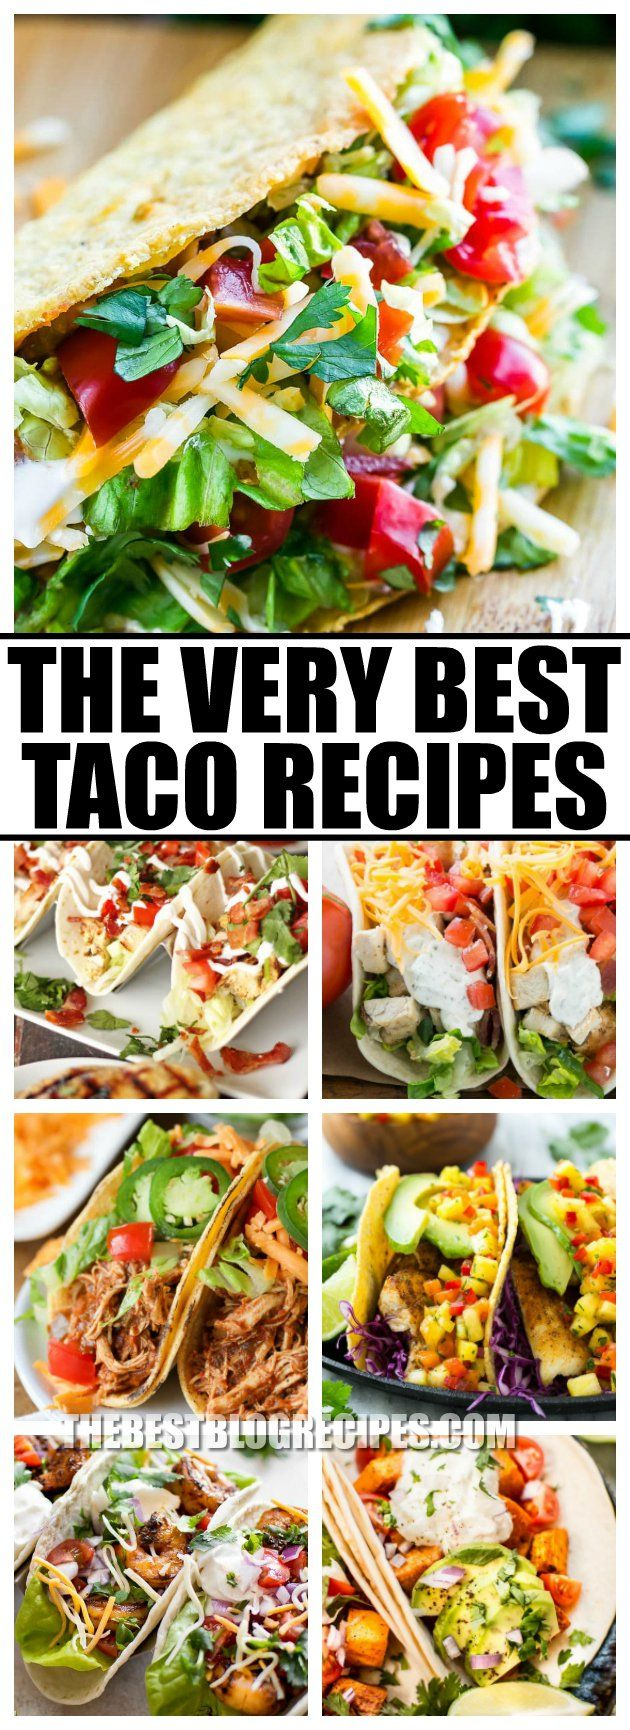 For this Taco Tuesday try out The Best Taco Recipes! These recipes are flavorful, delicious, and perfect for an easy to make family dinner! via @bestblogrecipes